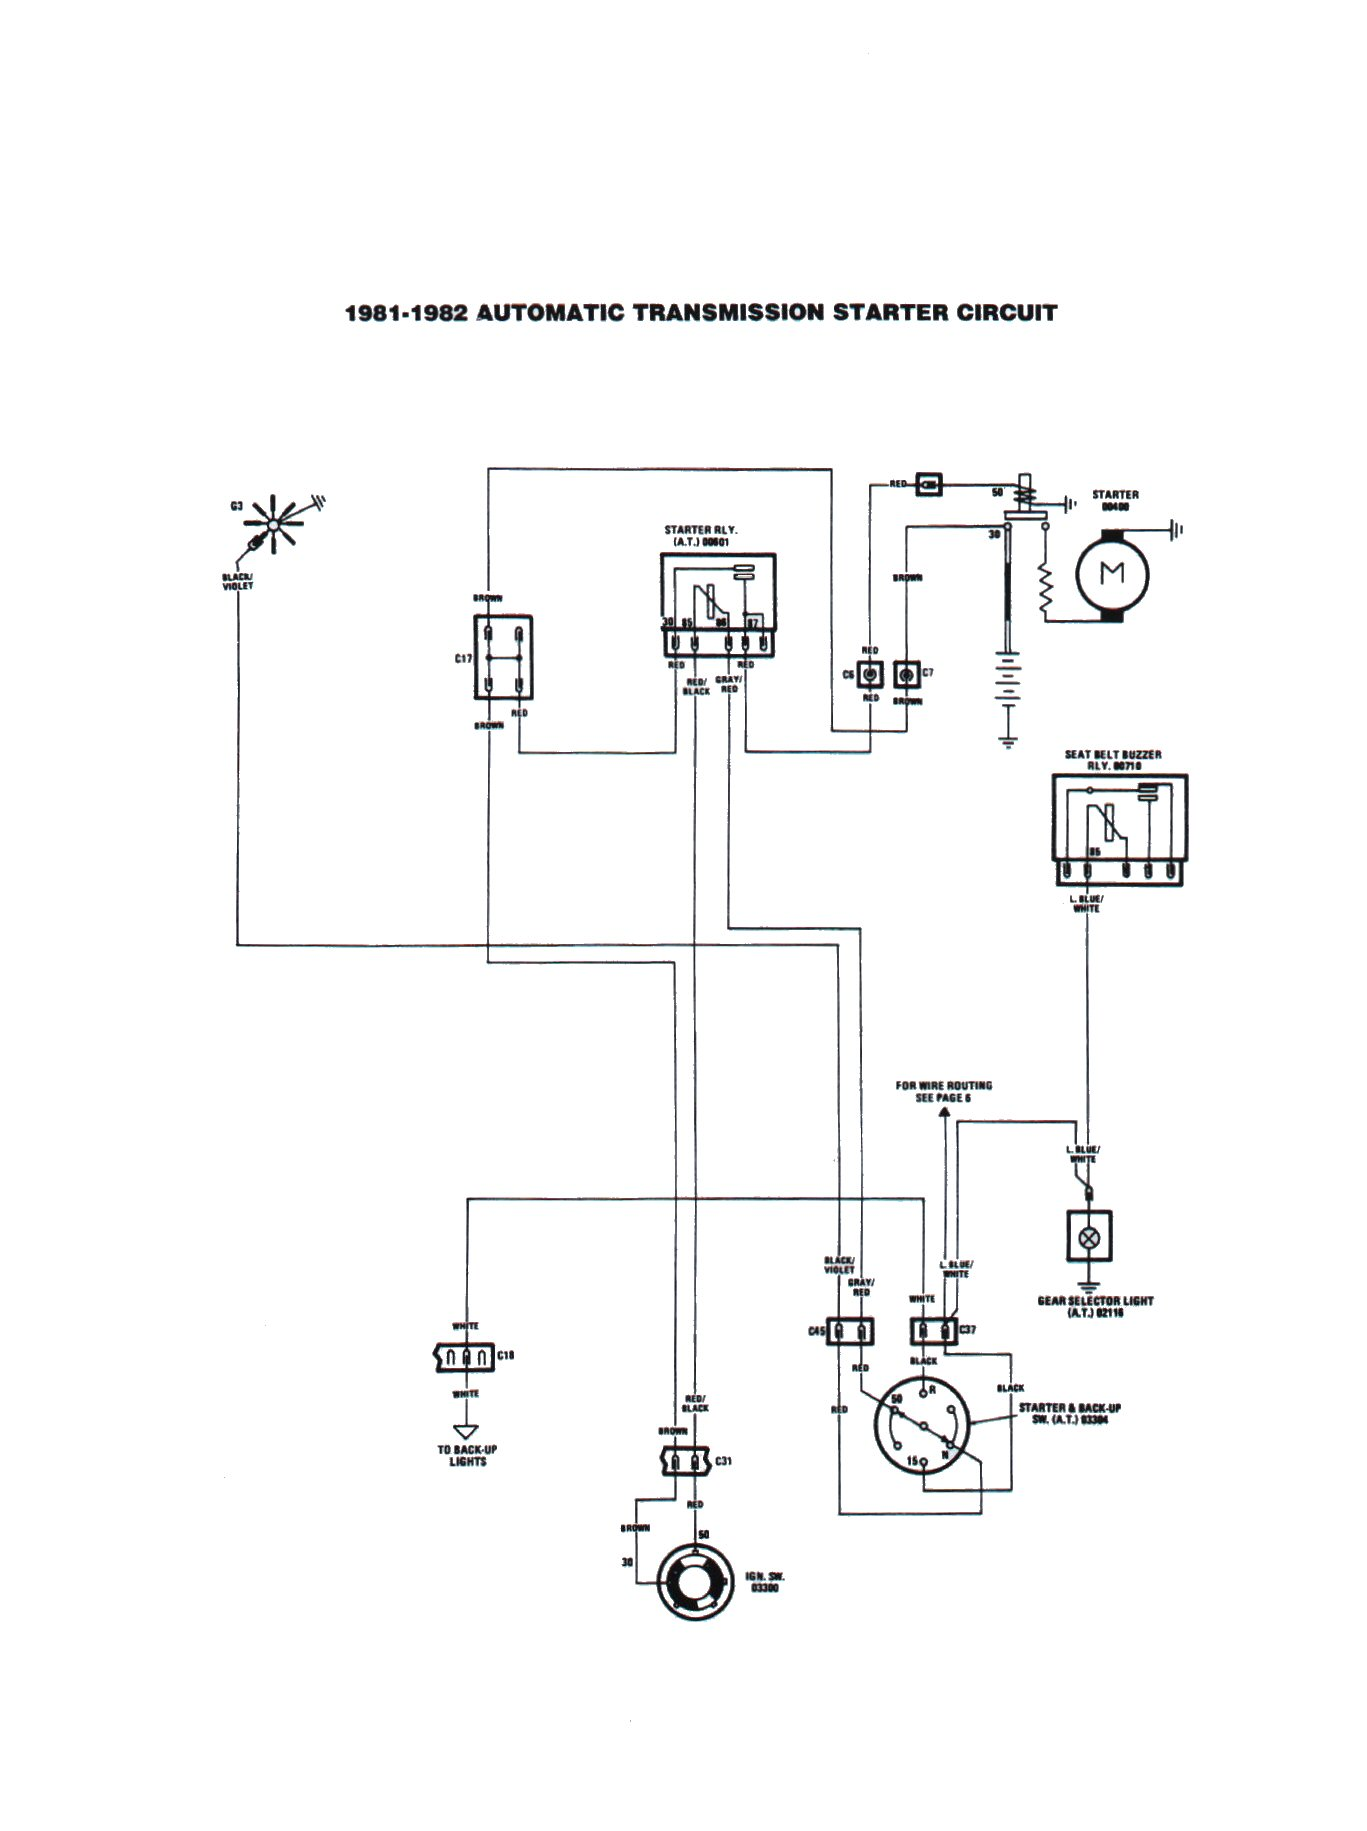 1979 fiat spider ignition wiring diagrams. fiat. wiring diagram images fiat spider ignition switch wiring diagram indak 5 pole ignition switch wiring diagram #11